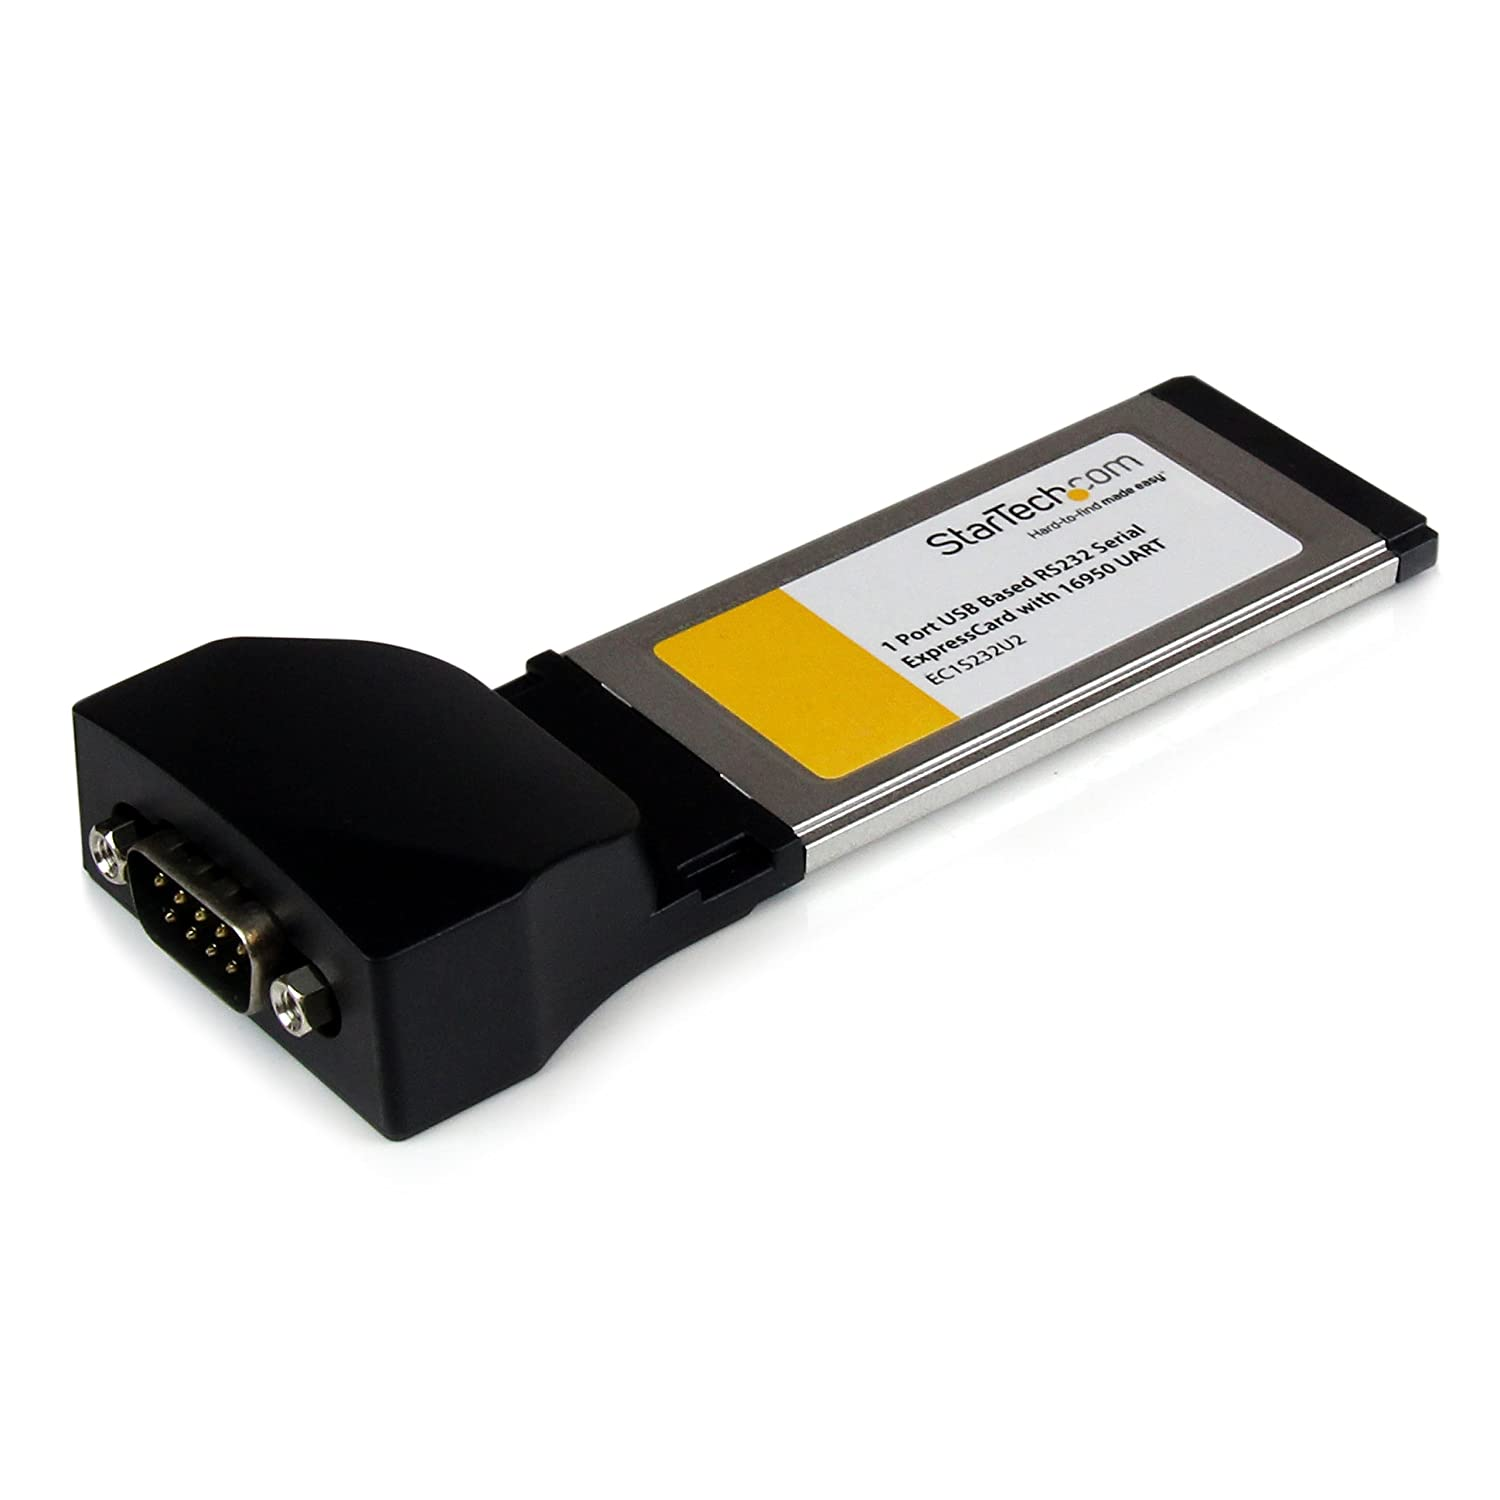 StarTech.com EC1S232U2 1-Port ExpressCard to RS232 DB9 Serial Adapter Card with 16950, USB Based Parallel & I/O Equipment